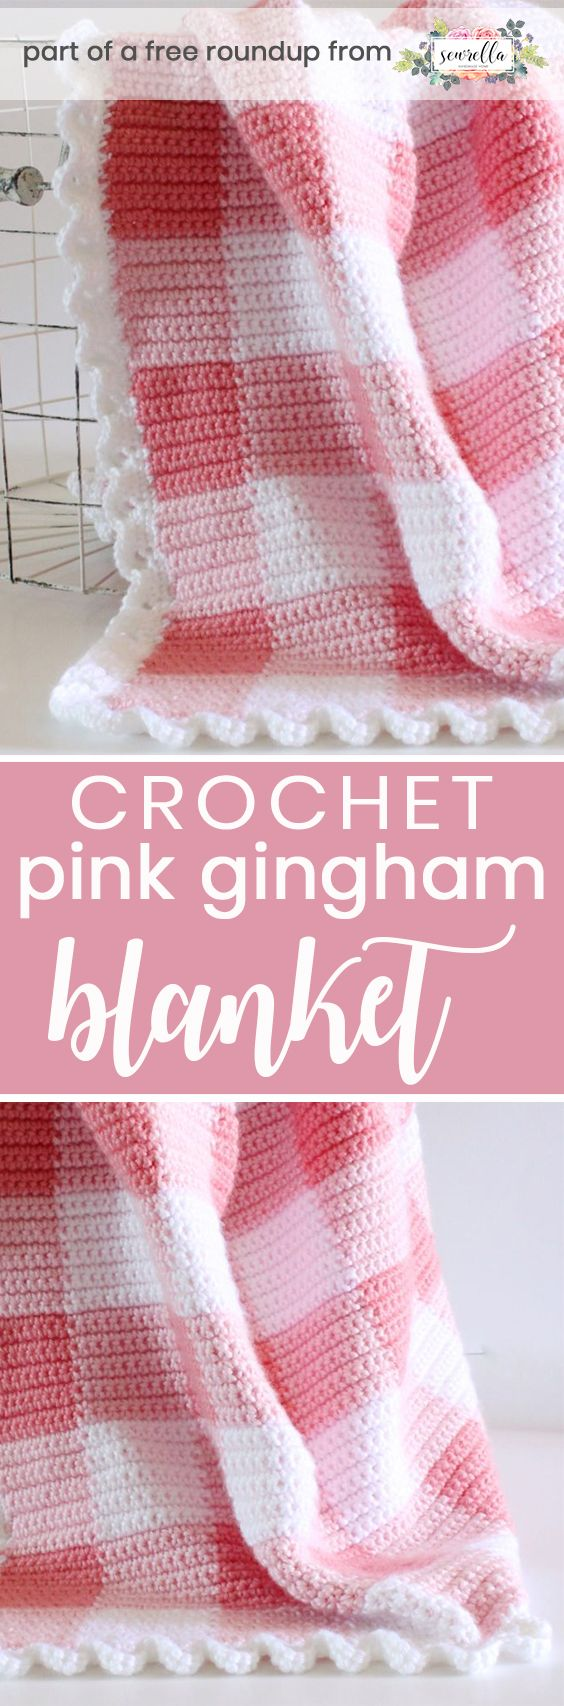 The Best Free Crochet Baby Blankets for Girls | crochet | Pinterest ...